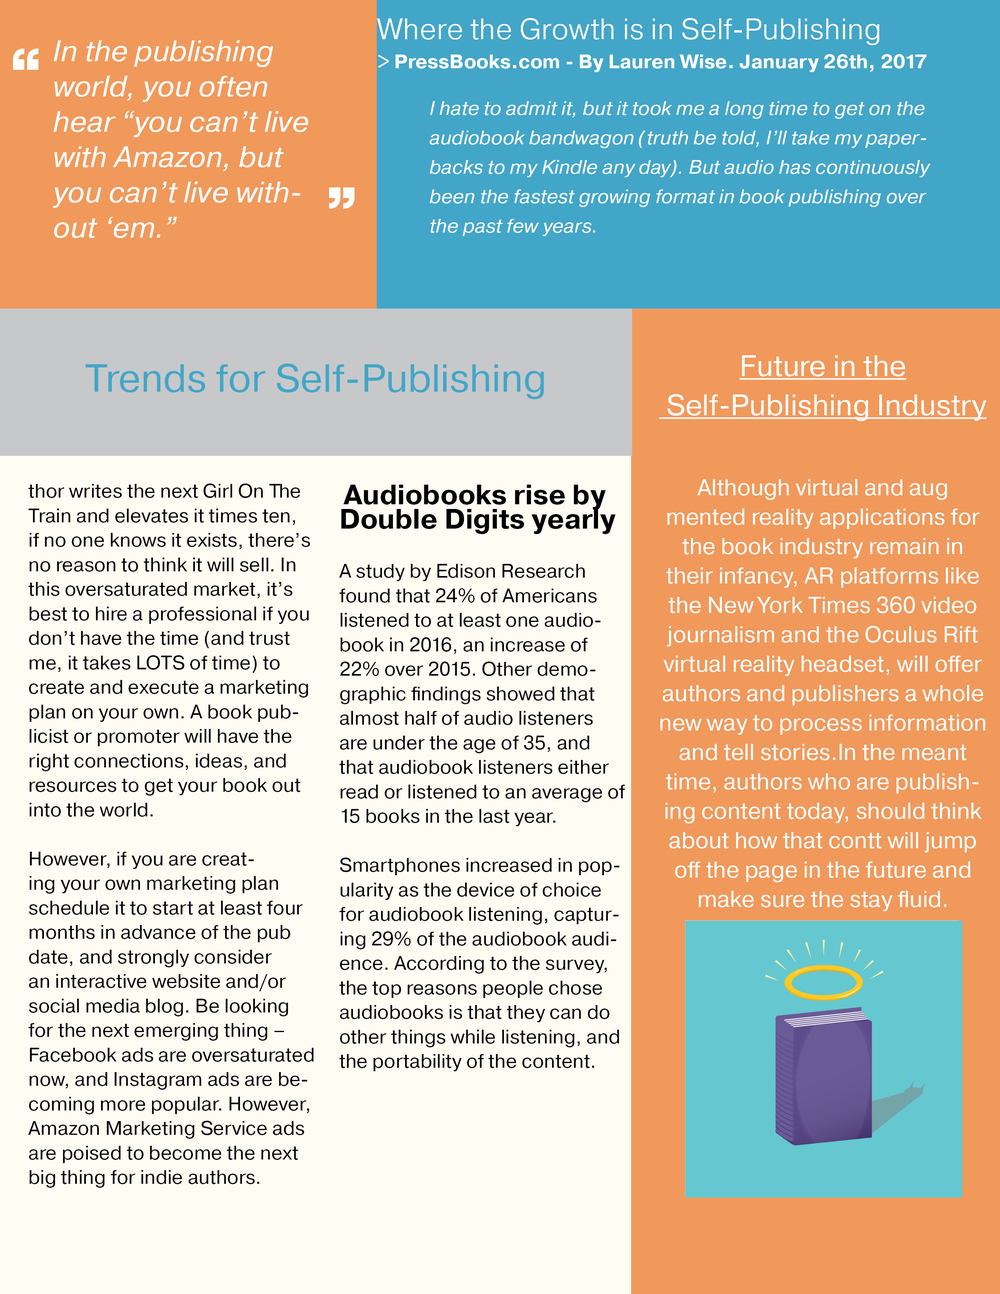 SelfPublishing_Industry_Trends_Overview_2.png